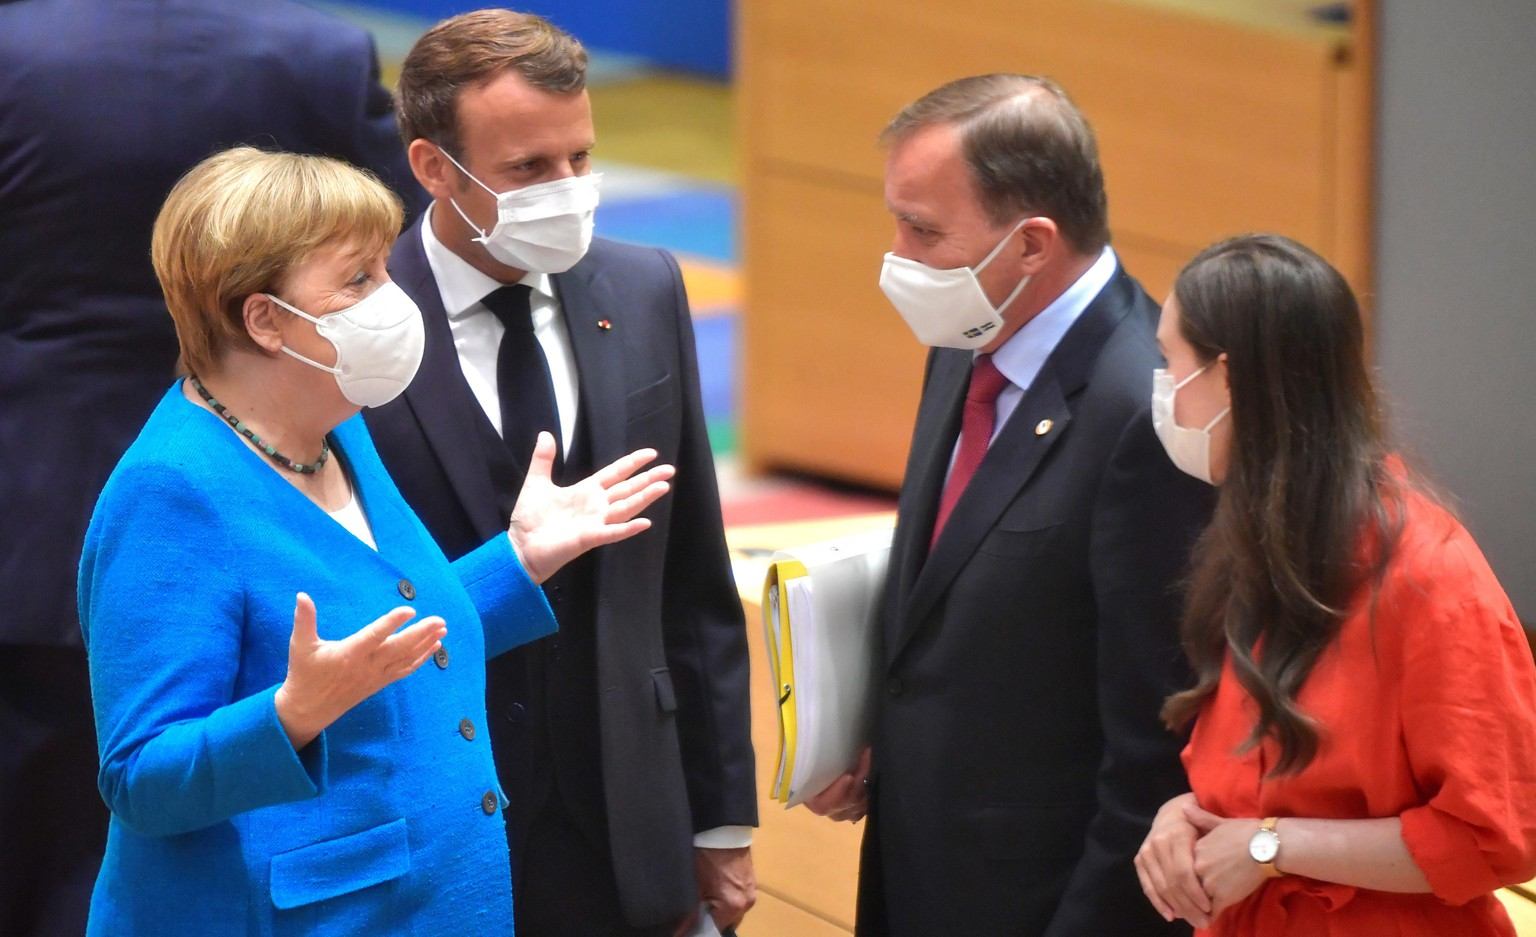 German Chancellor Angela Merkel, left, and French President Emmanuel Macron, second left, speak with Sweden's Prime Minister Stefan Lofven, second right, and Finland's Prime Minister Sanna Marin, right, during a round table meeting at an EU summit in Brussels, Saturday, July 18, 2020. Leaders from 27 European Union nations meet face-to-face for a second day of an EU summit to assess an overall budget and recovery package spread over seven years estimated at some 1.75 trillion to 1.85 trillion euros. (John Thys, Pool Photo via AP)